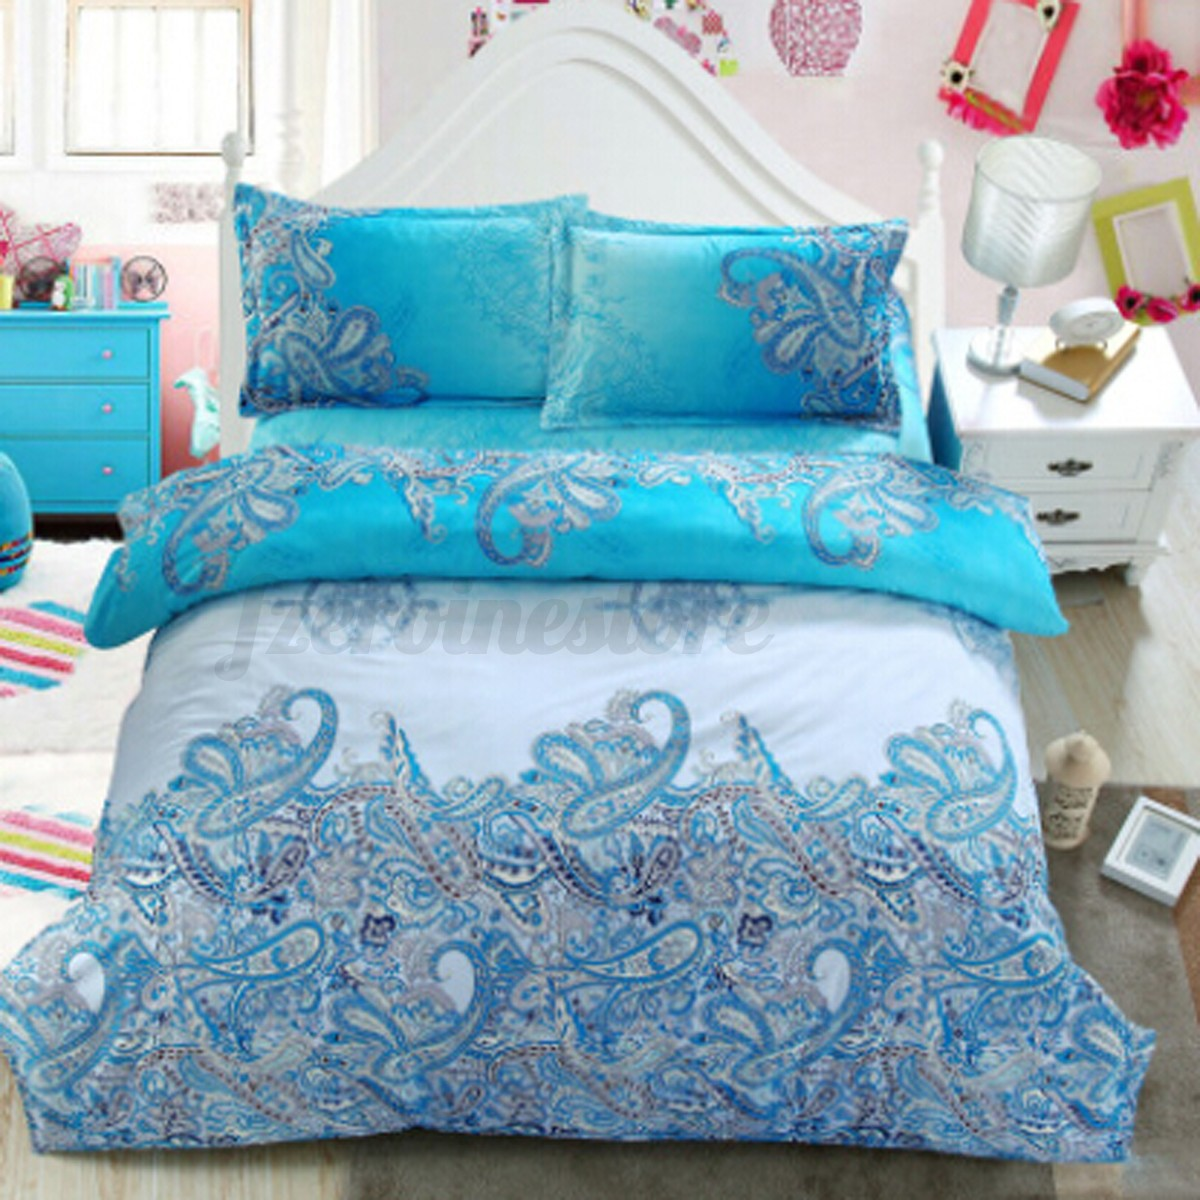 3D-Effect-4-Pcs-Quilt-Duvet-Covers-With-Fitted-Sheet-Bedding-Set-2-Pillow-Case thumbnail 14